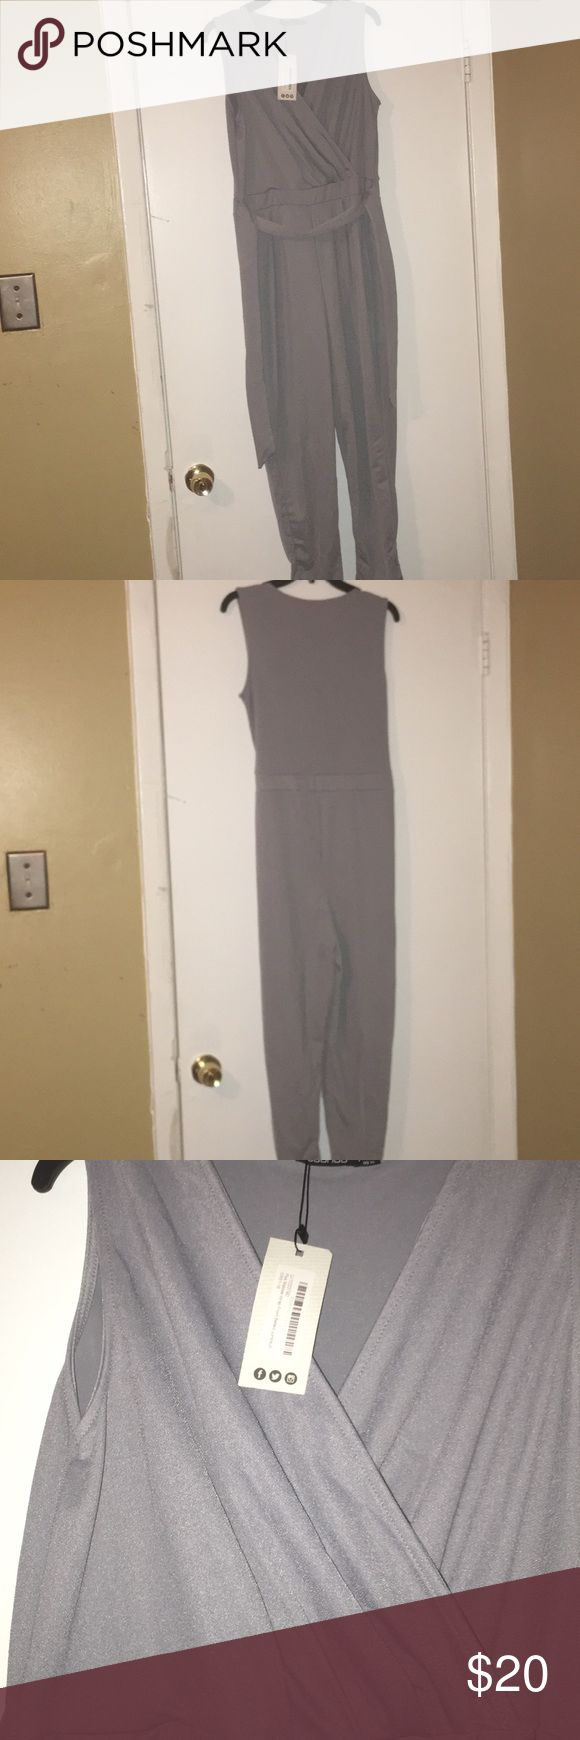 Women's plus size Boohoo jumpsuit size 14 Women's plus size Boohoo jumpsuit size 14 brand new with tags, jumpsuit is free from any stains, rips, tears or holes all clothing comes from pet free and smoke free home all prices are negotiable and reasonable offers will be seriously considered, cleaning out my closets so make me an offer, prices are heavily discounted and ready to move Boohoo Plus Pants Jumpsuits & Rompers